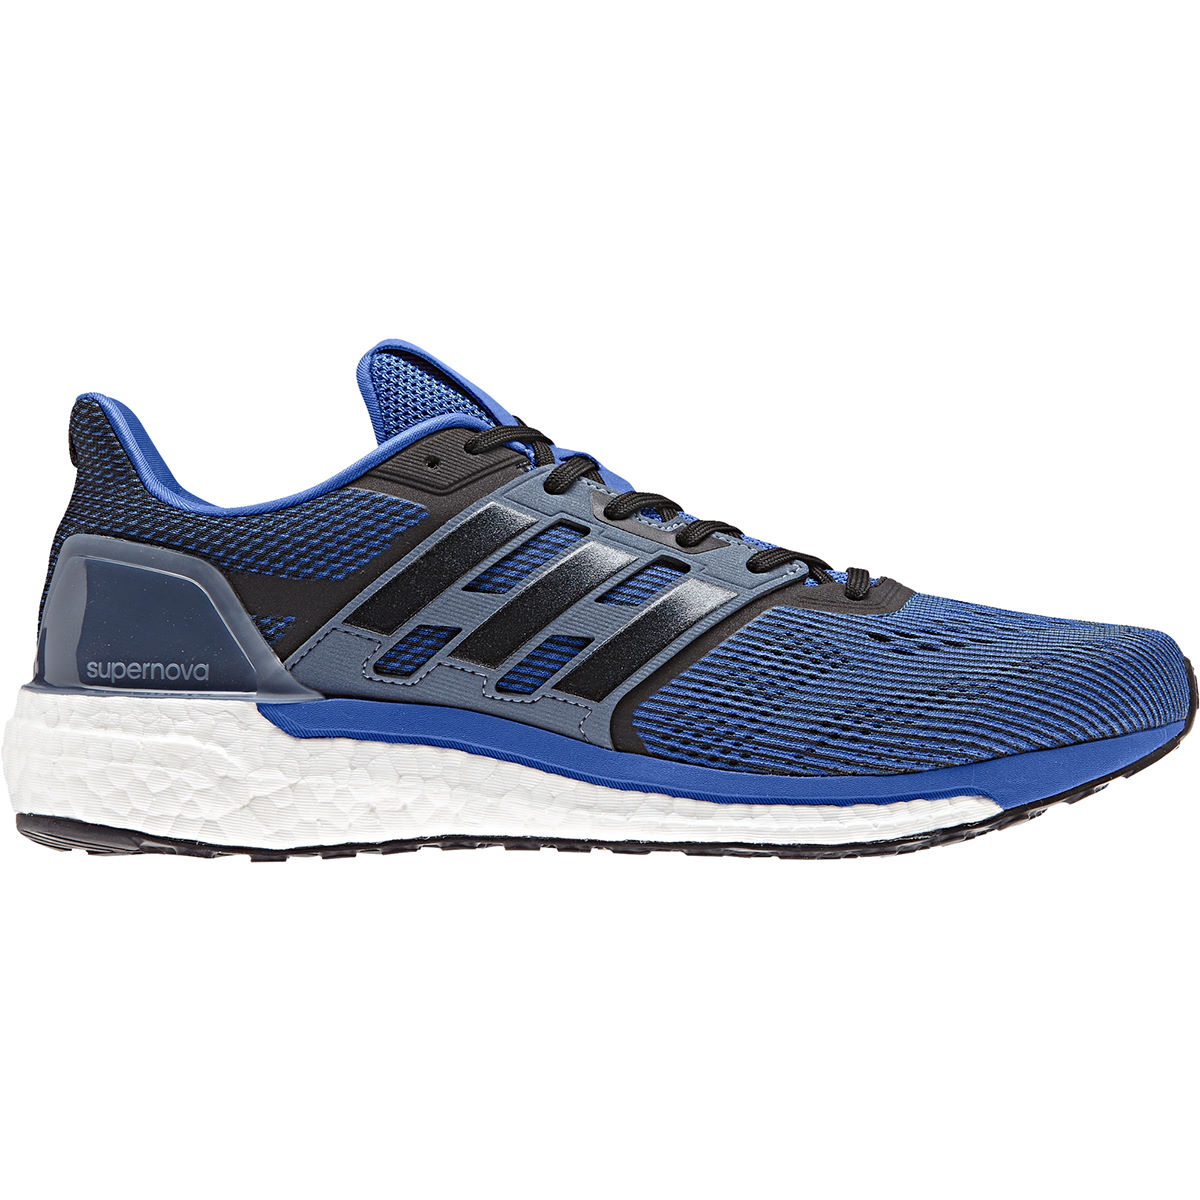 low priced ccfb8 65e52 Wiggle España   Zapatillas adidas Supernova   Zapatillas de running